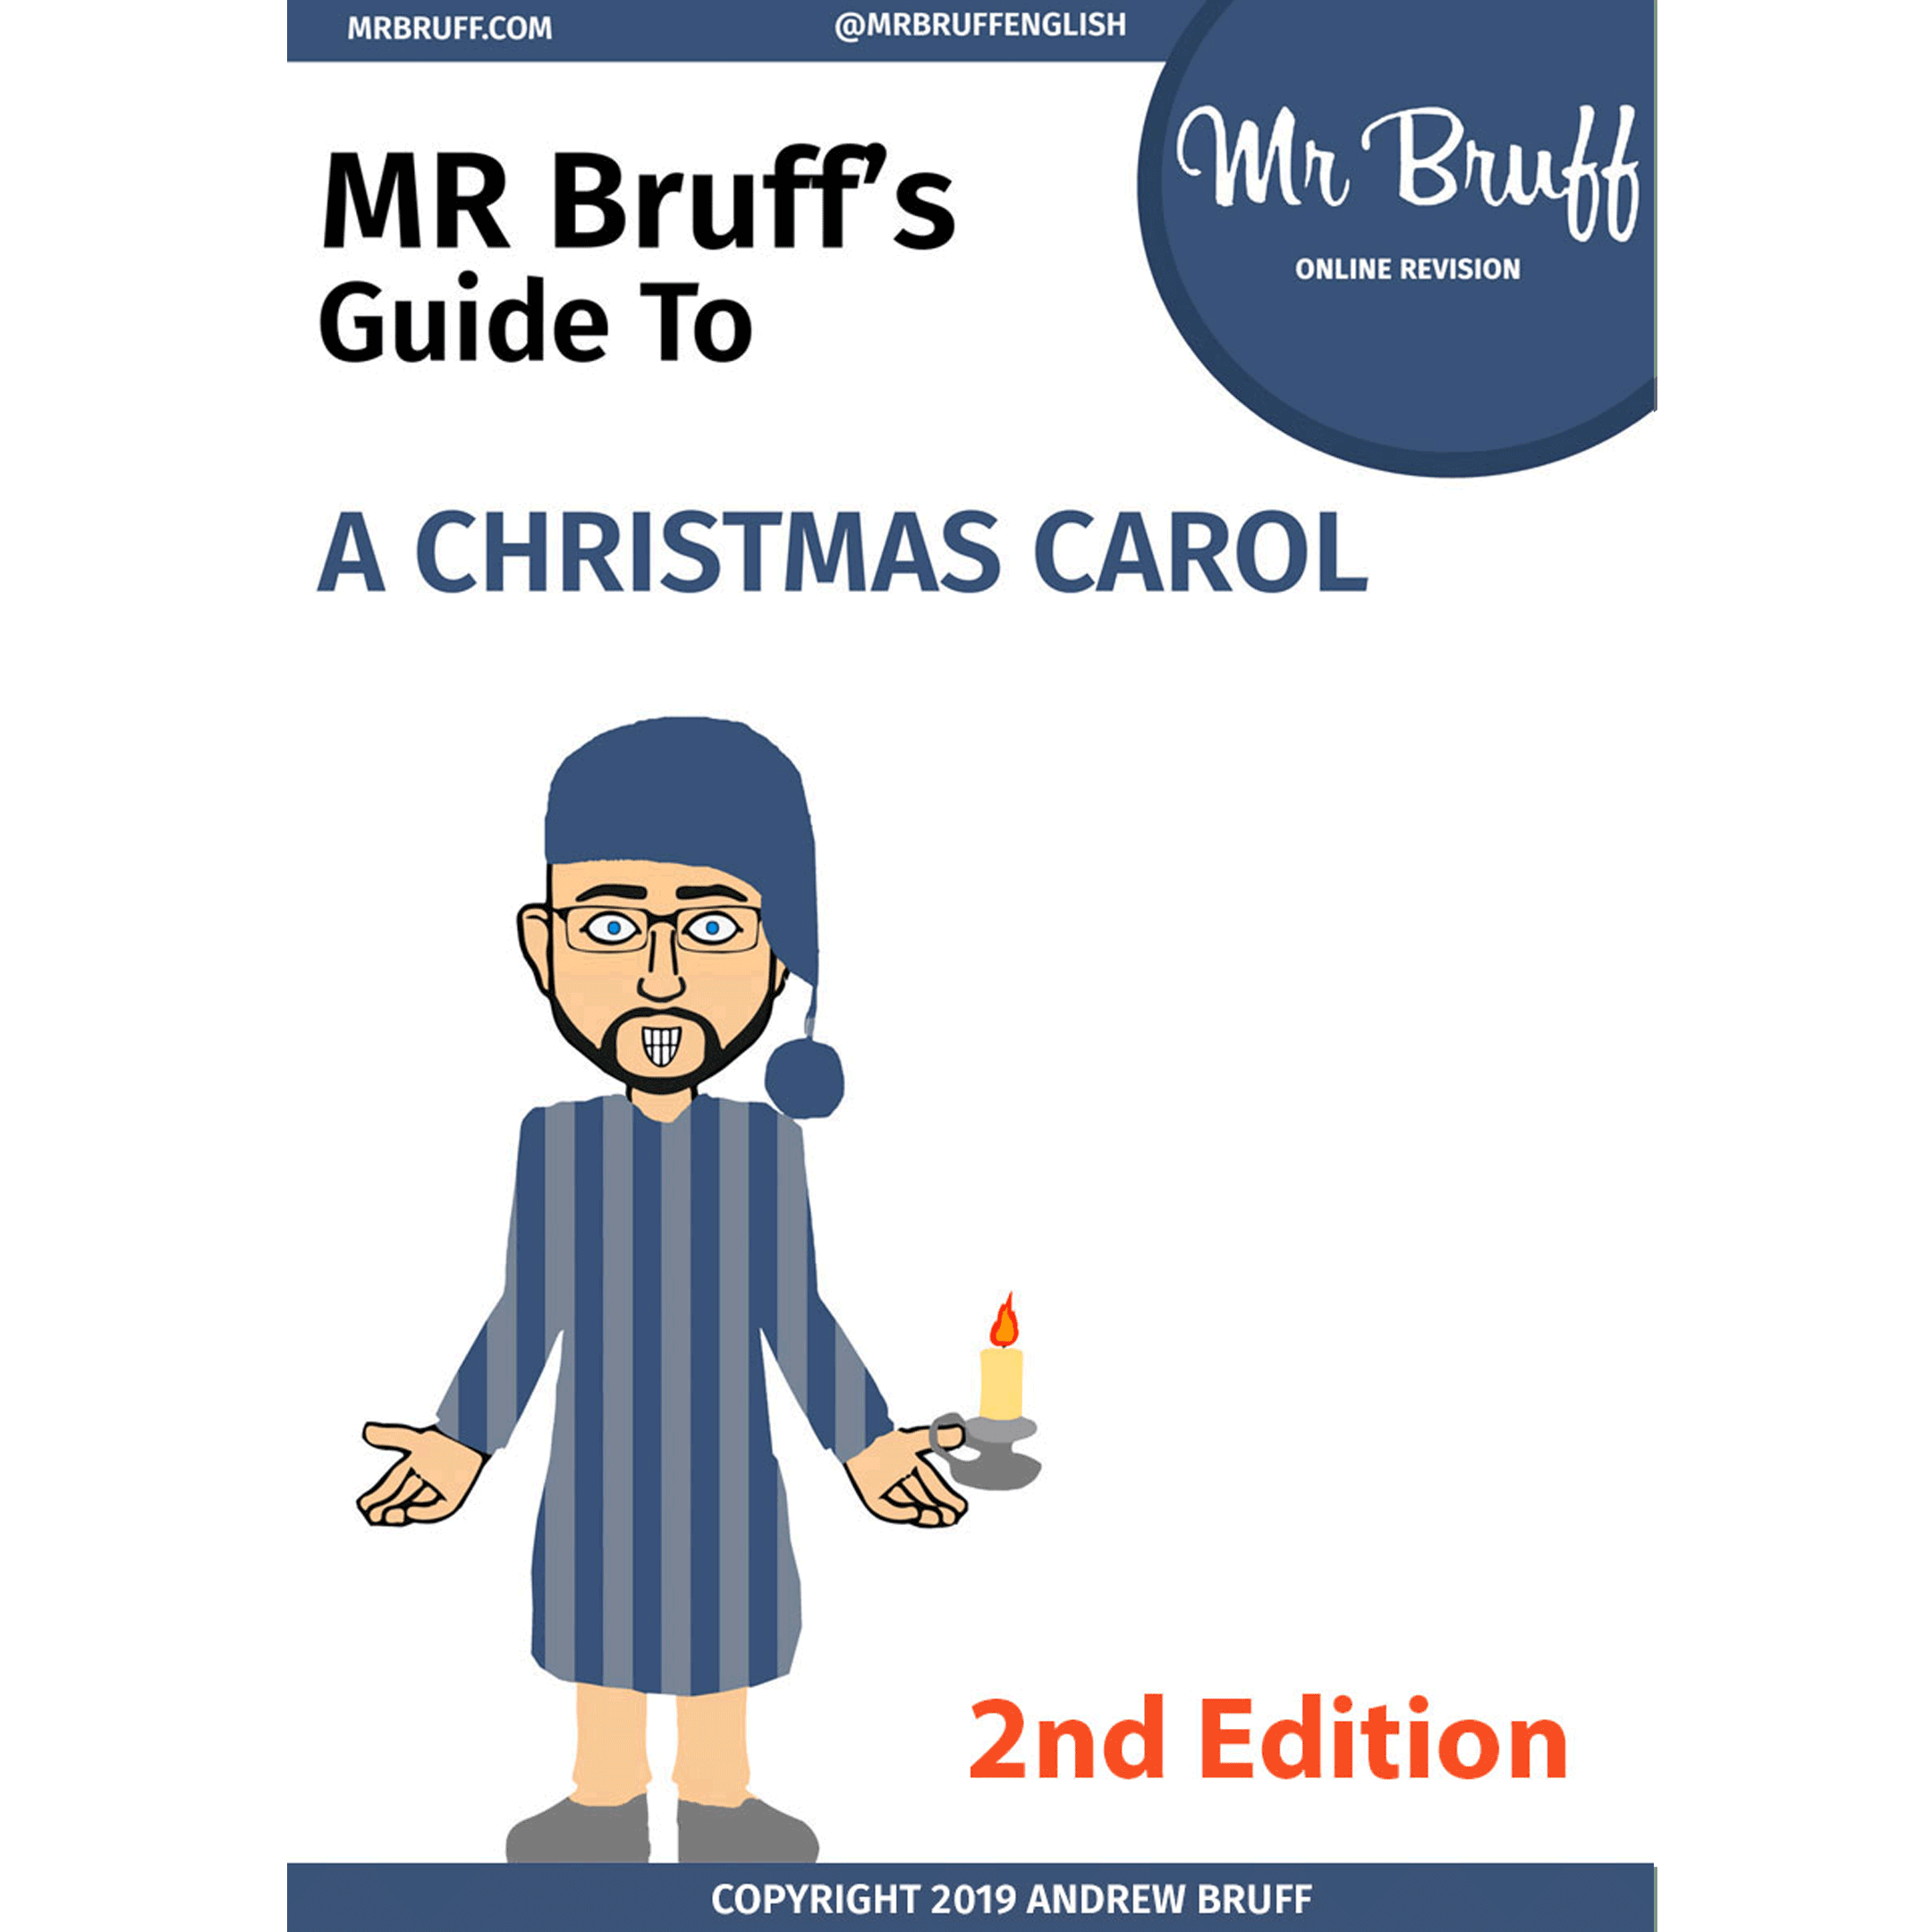 Christmas Carol Text Guide.Mr Bruff S Guide To A Christmas Carol 2nd Edition Ebook